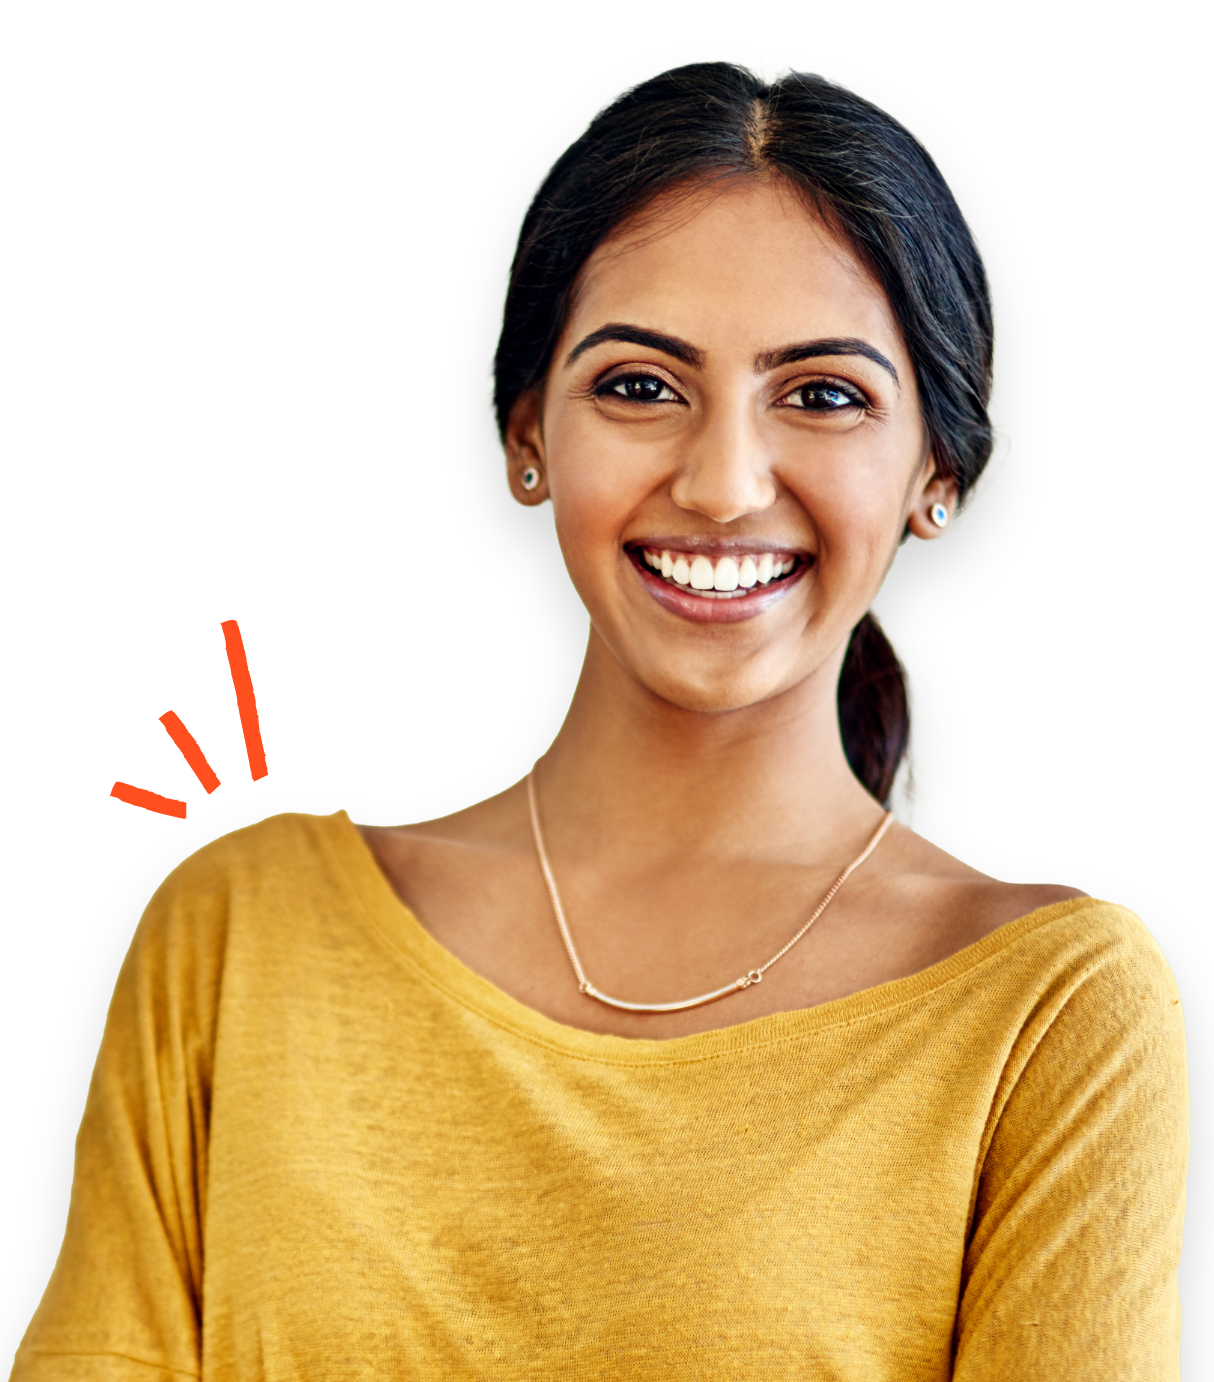 Indian woman with globe